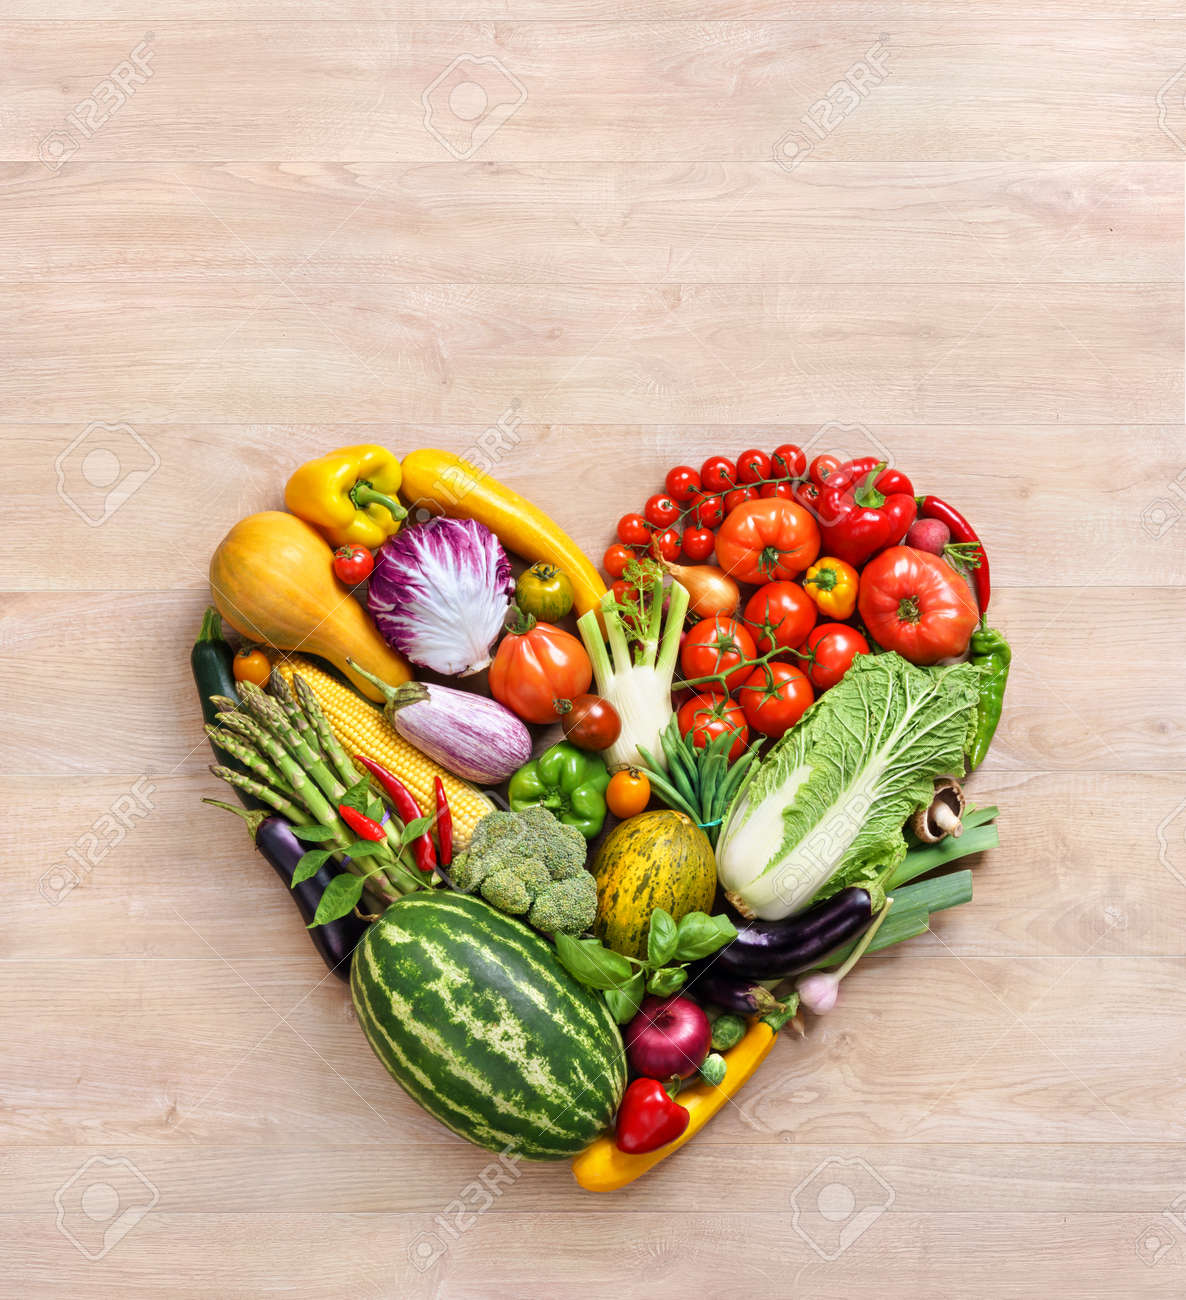 Heart Symbol Fruits Diet Concept Healthy Eating Concept Food Stock Photo Picture And Royalty Free Image Image 52849020